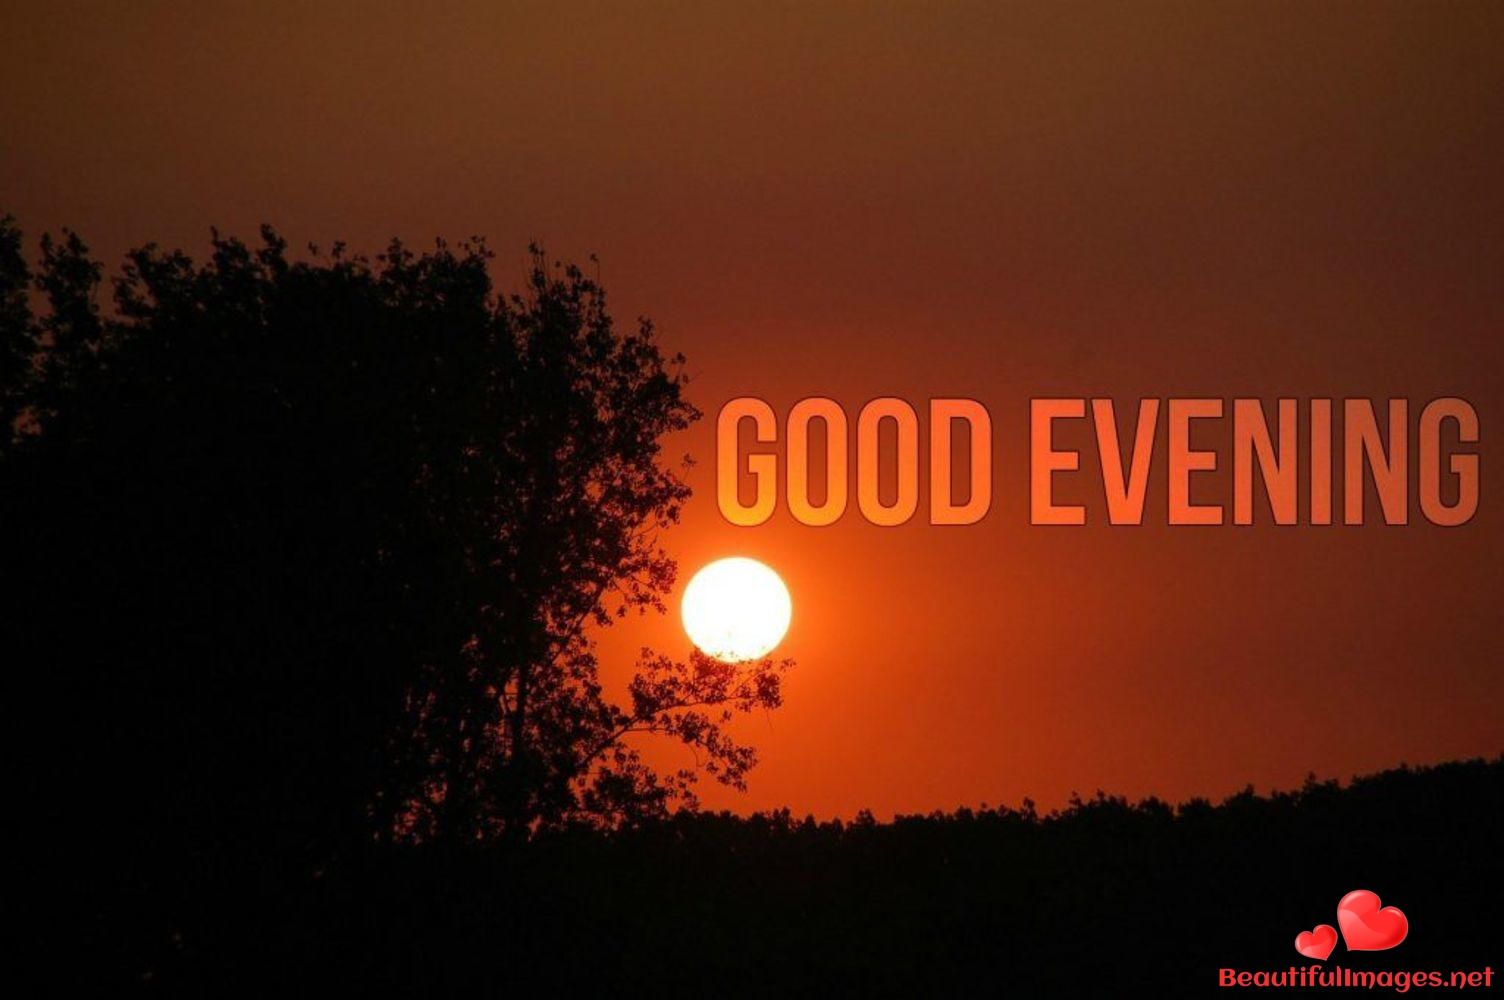 Images-Good-Evening-Nice-Pictures-122